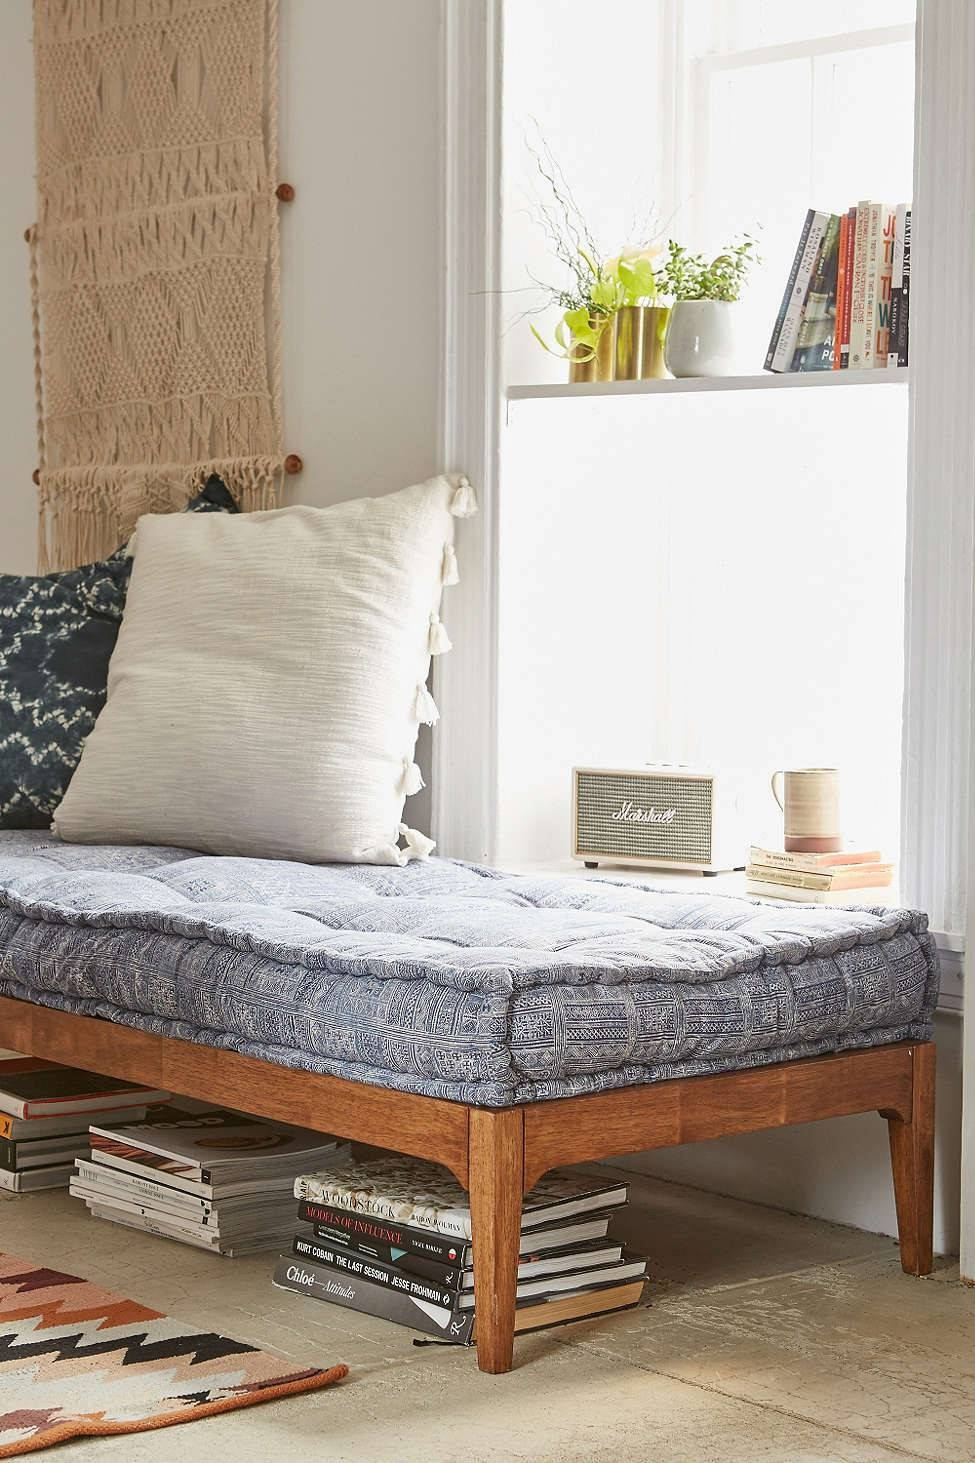 Can You Replace A Sofa With A Daybed? – Decorating – Lonny With Sofa Day Beds (View 8 of 30)